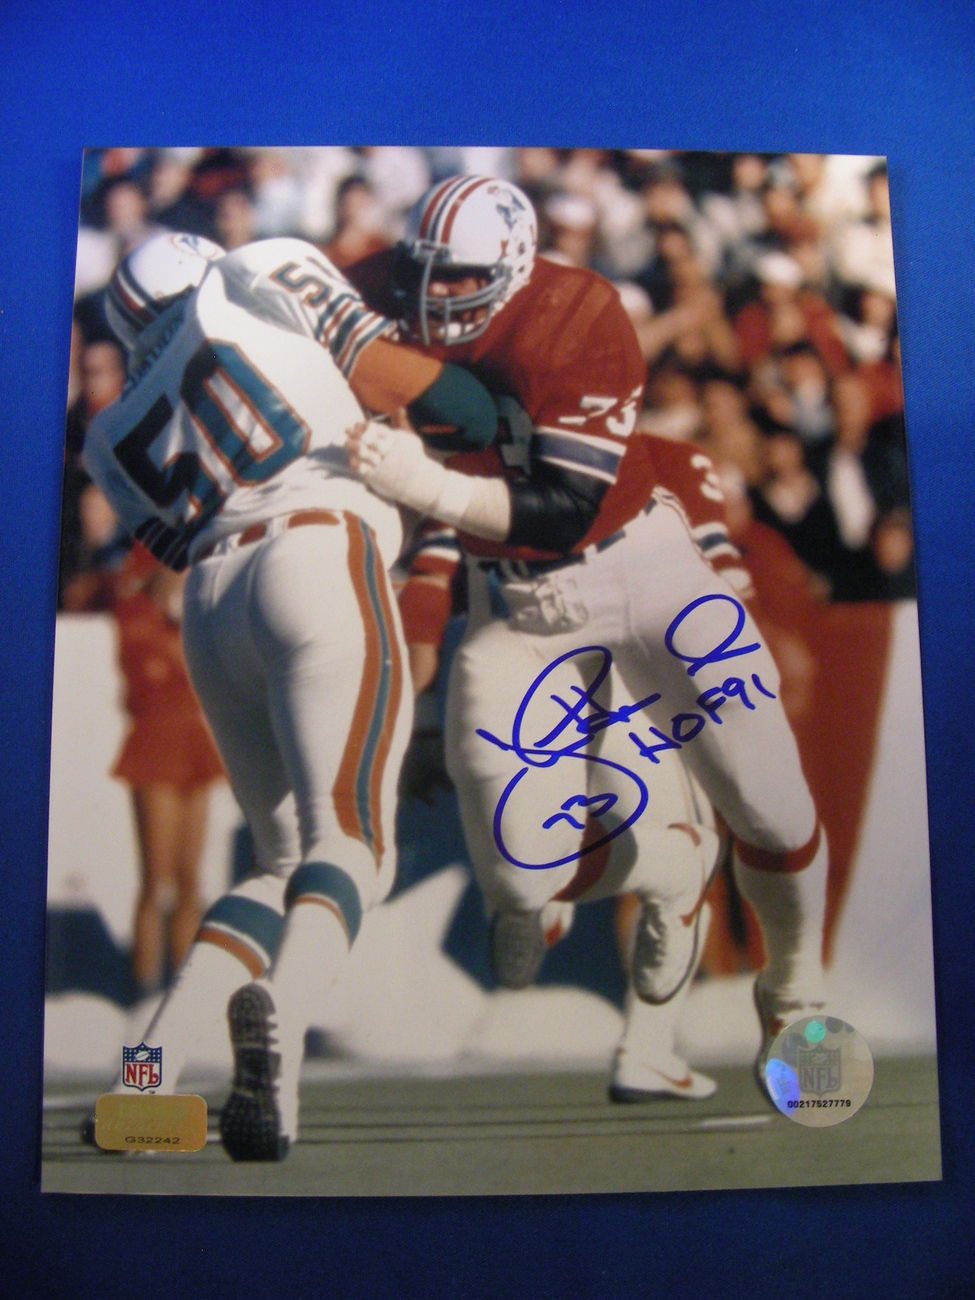 Primary image for JOHN HANNAH PRO FB HOF OG 70-80'S ALL-DECADE AUTO SIGNED 8X10 GRIDIRON AUTHENTIC